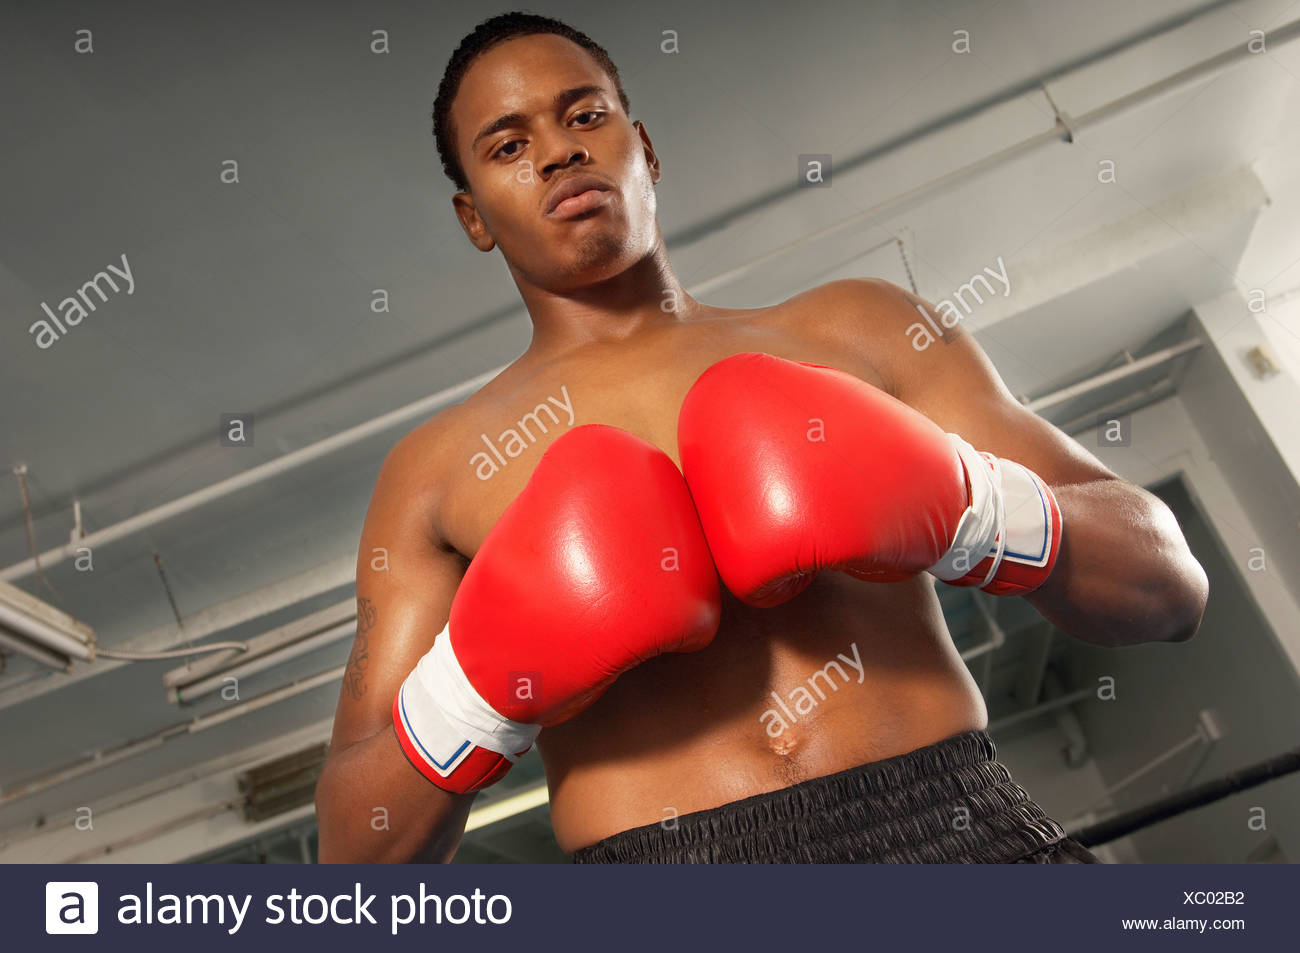 Boxer with red boxing gloves in gym, half length - Stock Image